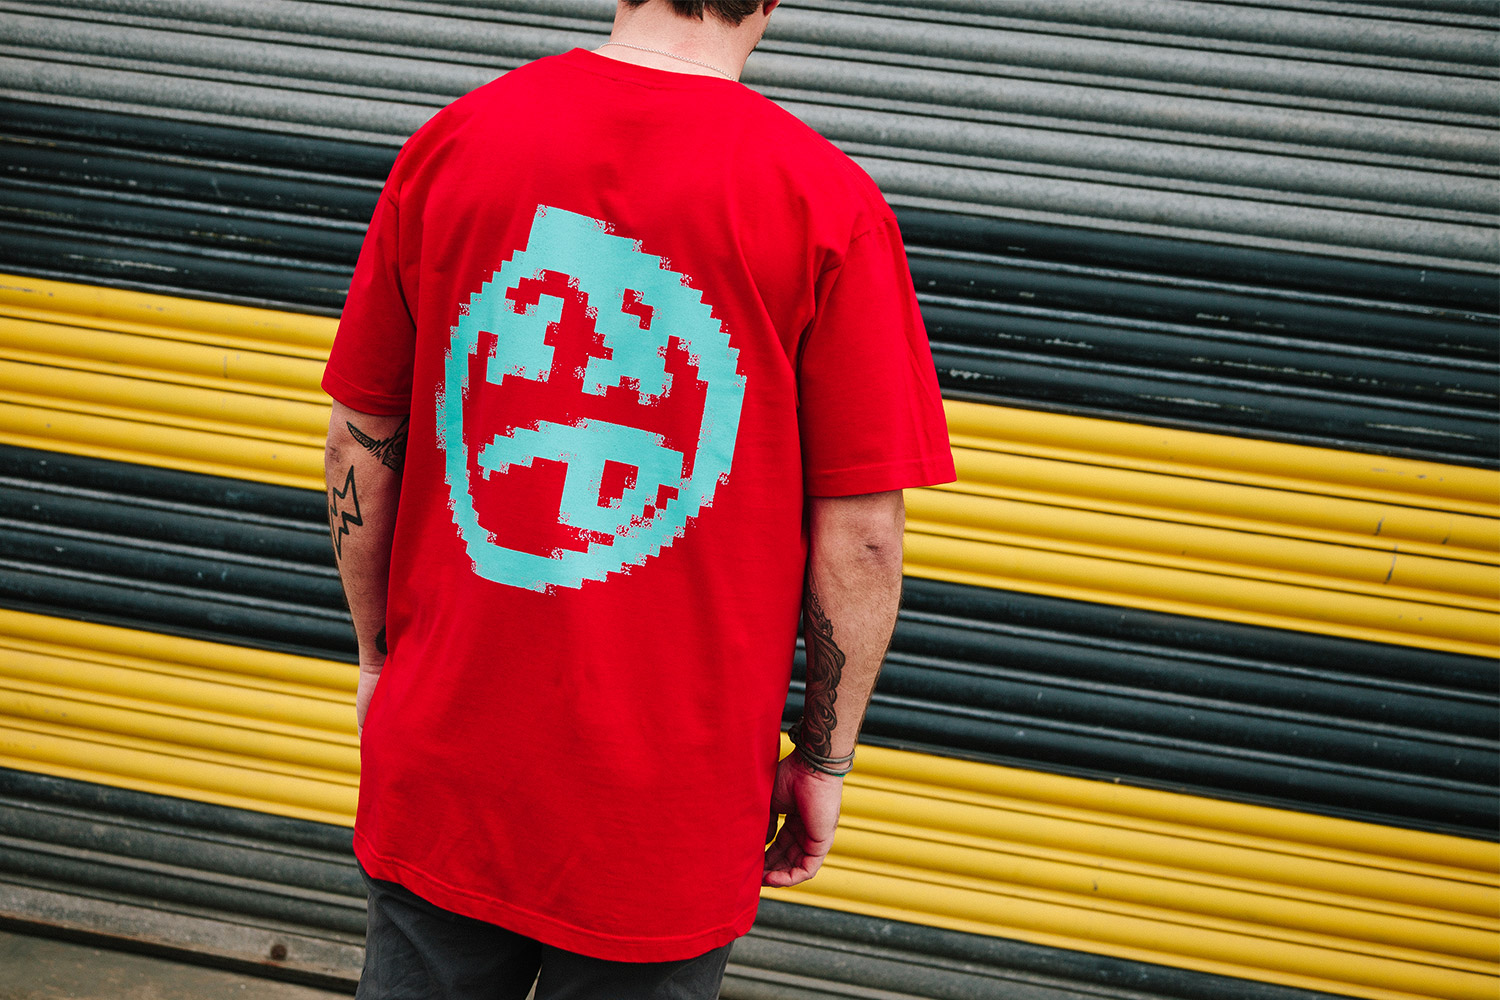 'Pixelate' Tee now in red